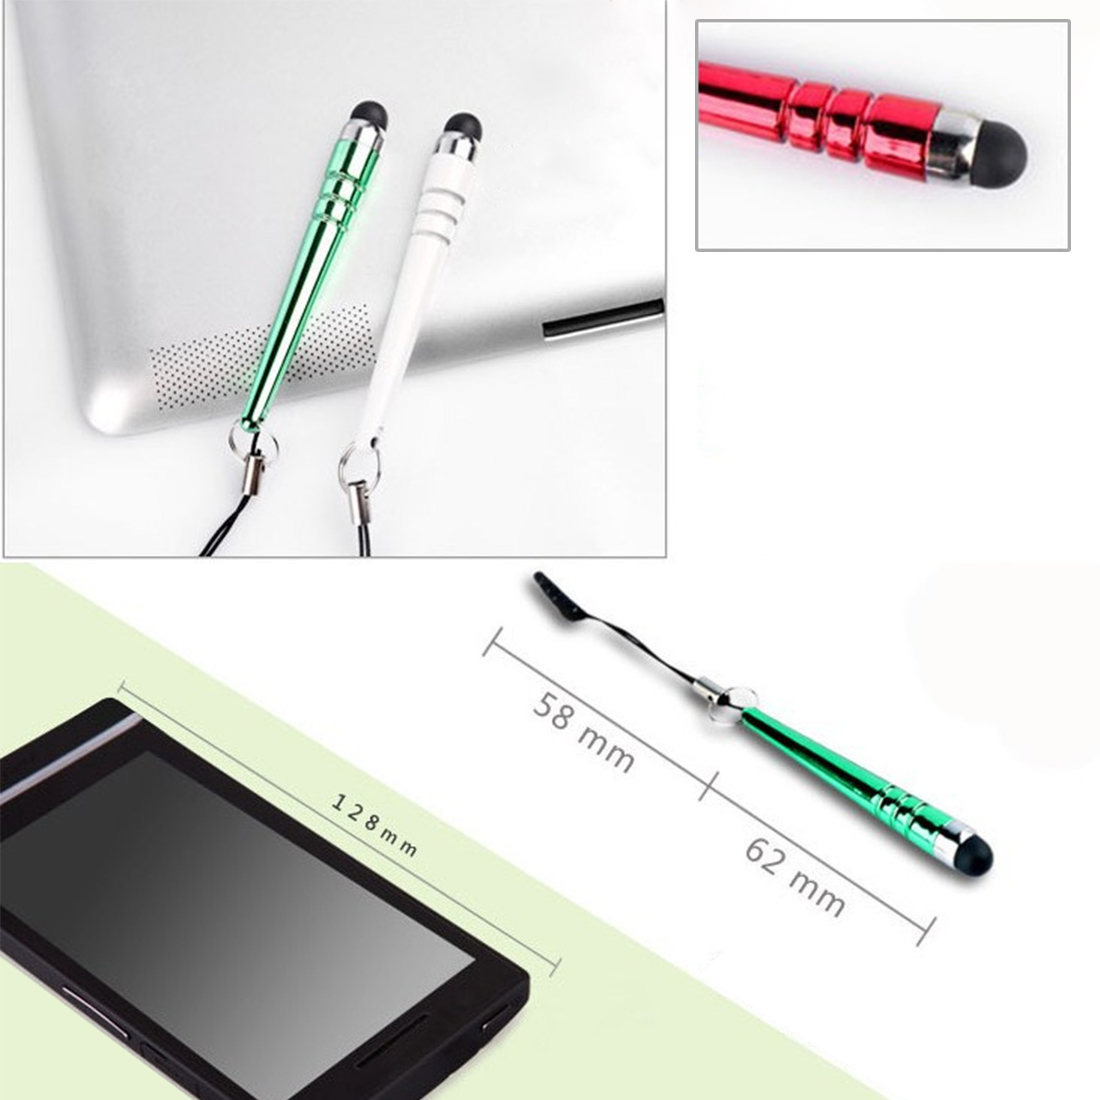 Marsnaska Luxury Diamond Crystal Stylus Touch Screen Pen Stylus For iPhone Tablet Laptops Universal Jack EarPhones dust plug